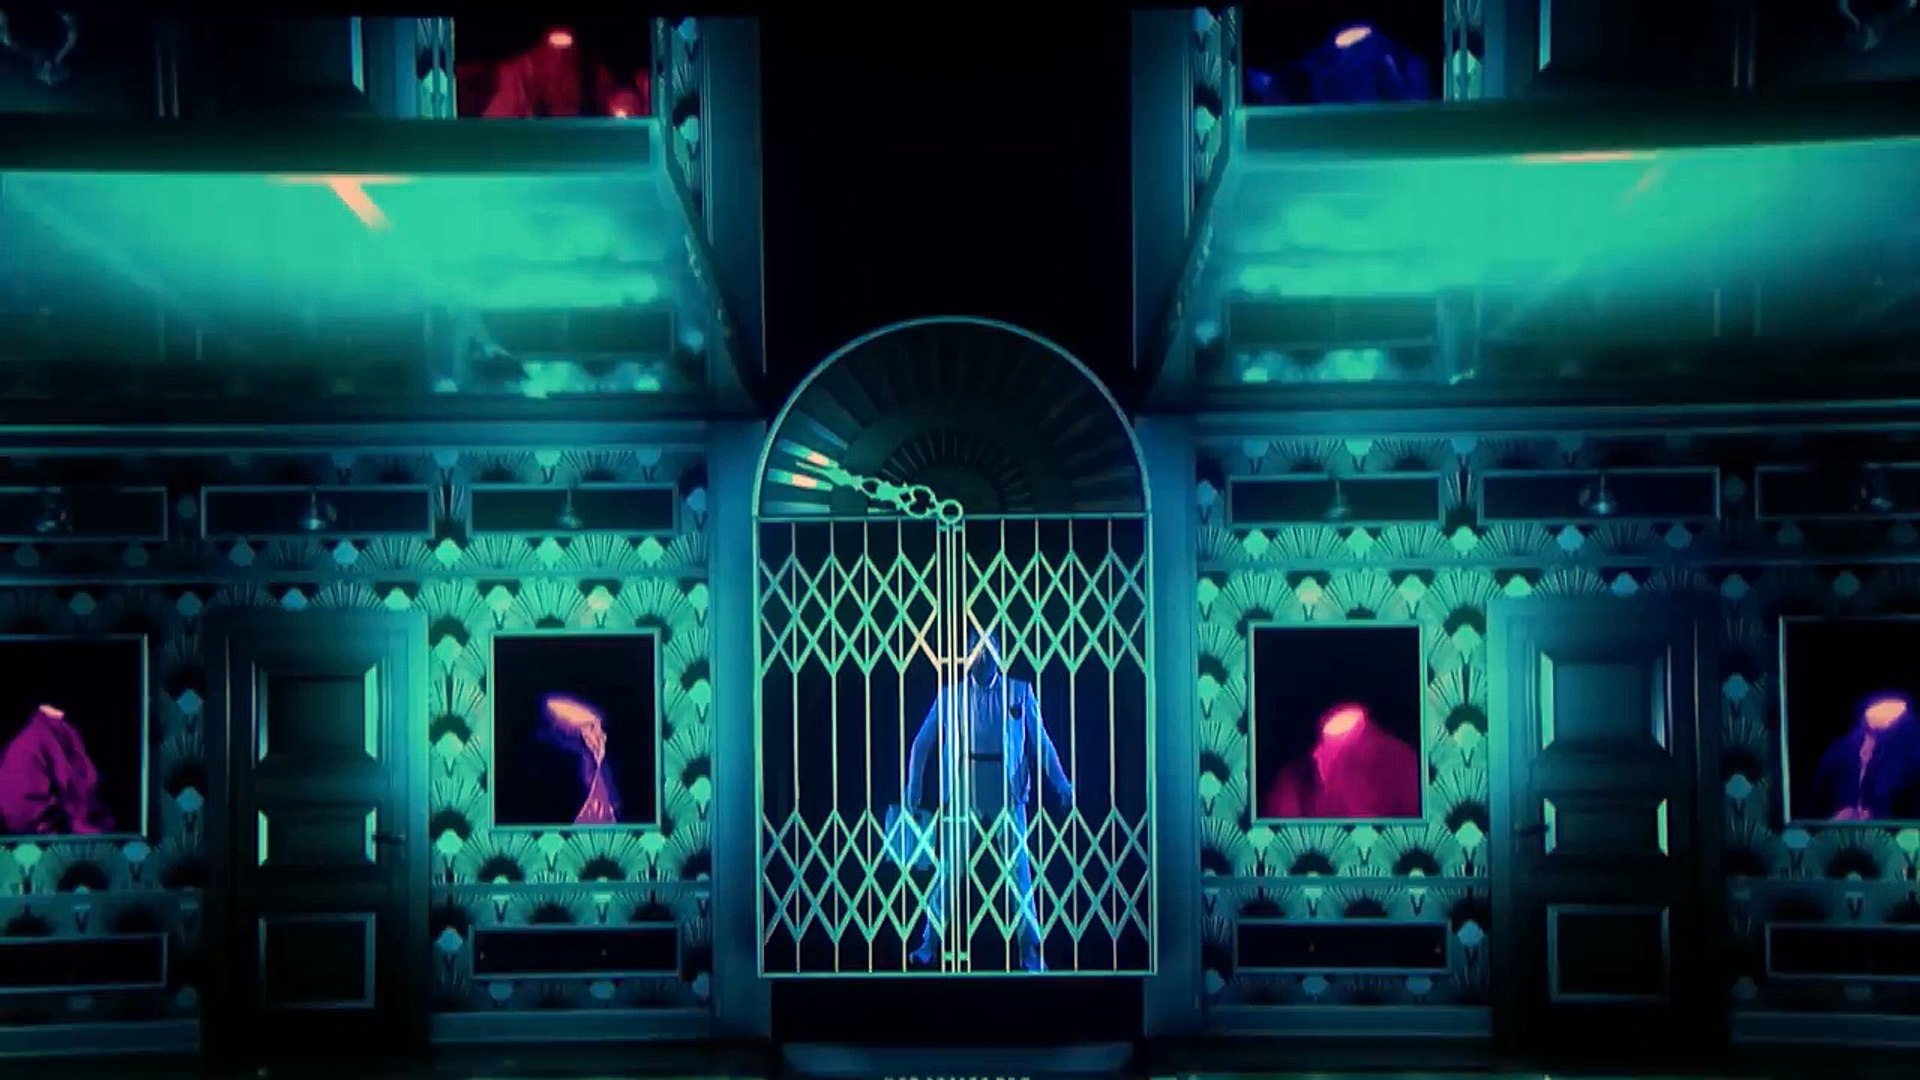 Front Pictures- Epic Projection Act Shocks Audience With Innovative Tech - America's Got Talent